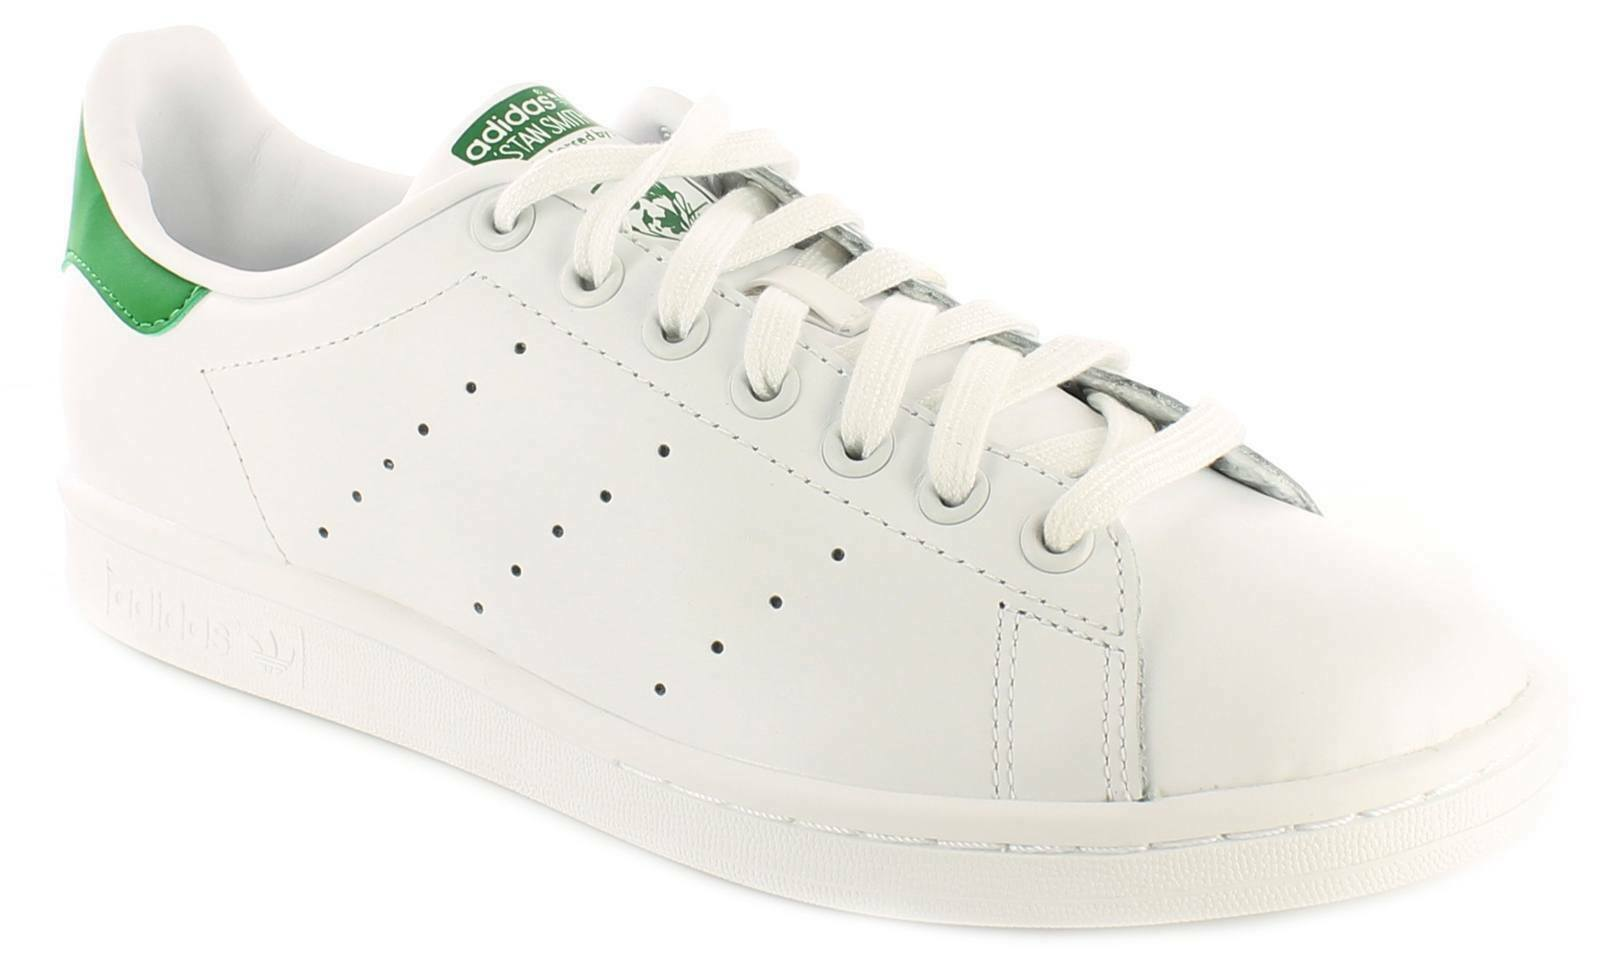 Hombre Caballeros blancoo Adidas Originals Stan Smith con Cordones Zapatillas